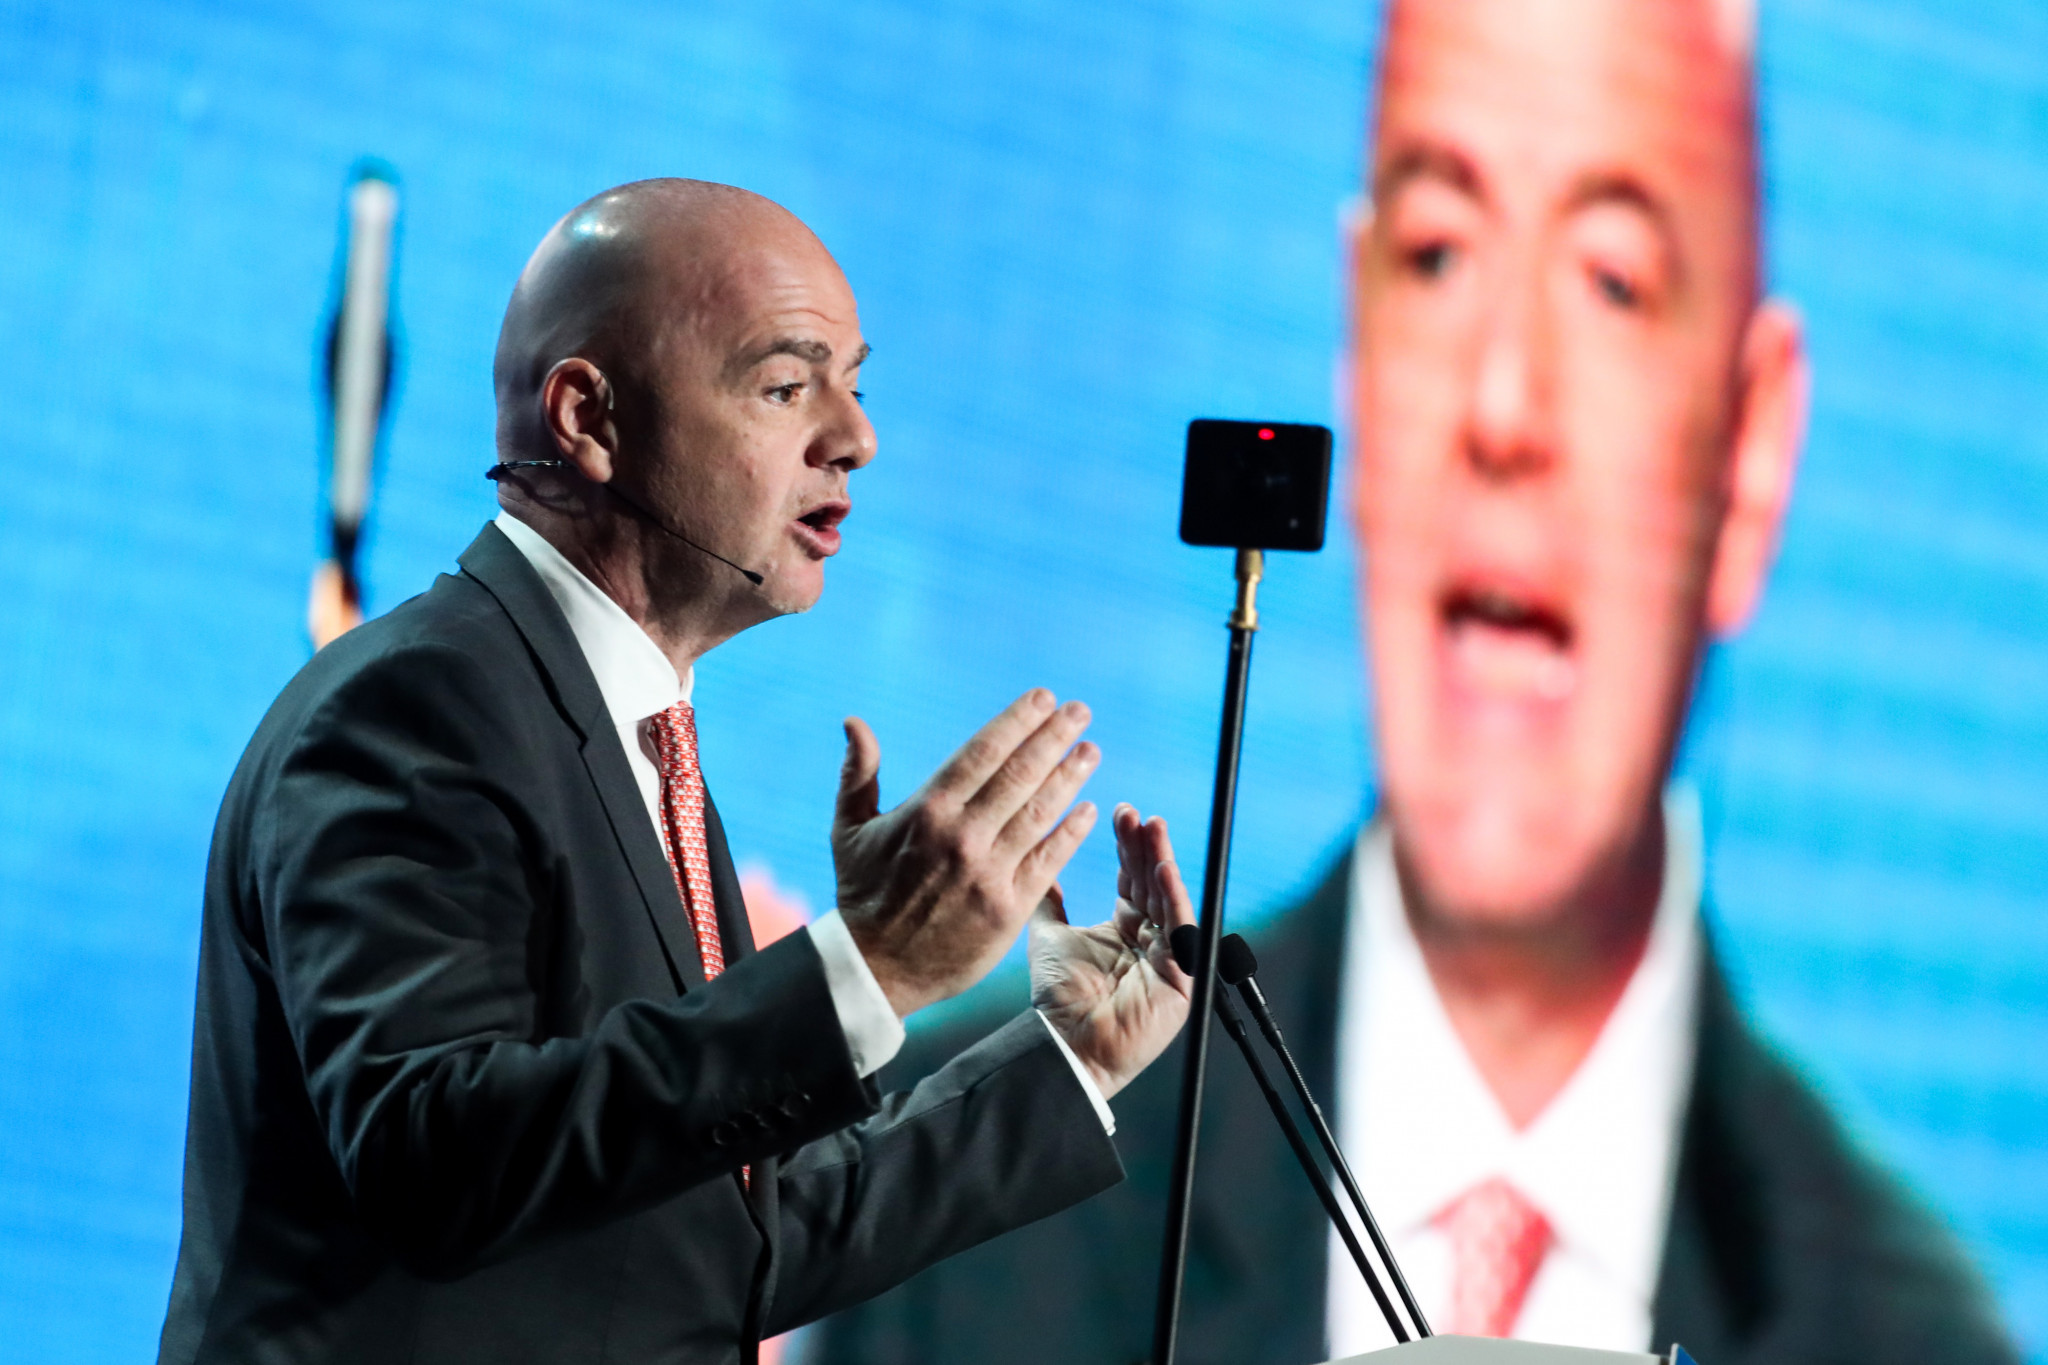 Infantino hints yet again at Qatar 2022 World Cup expansion